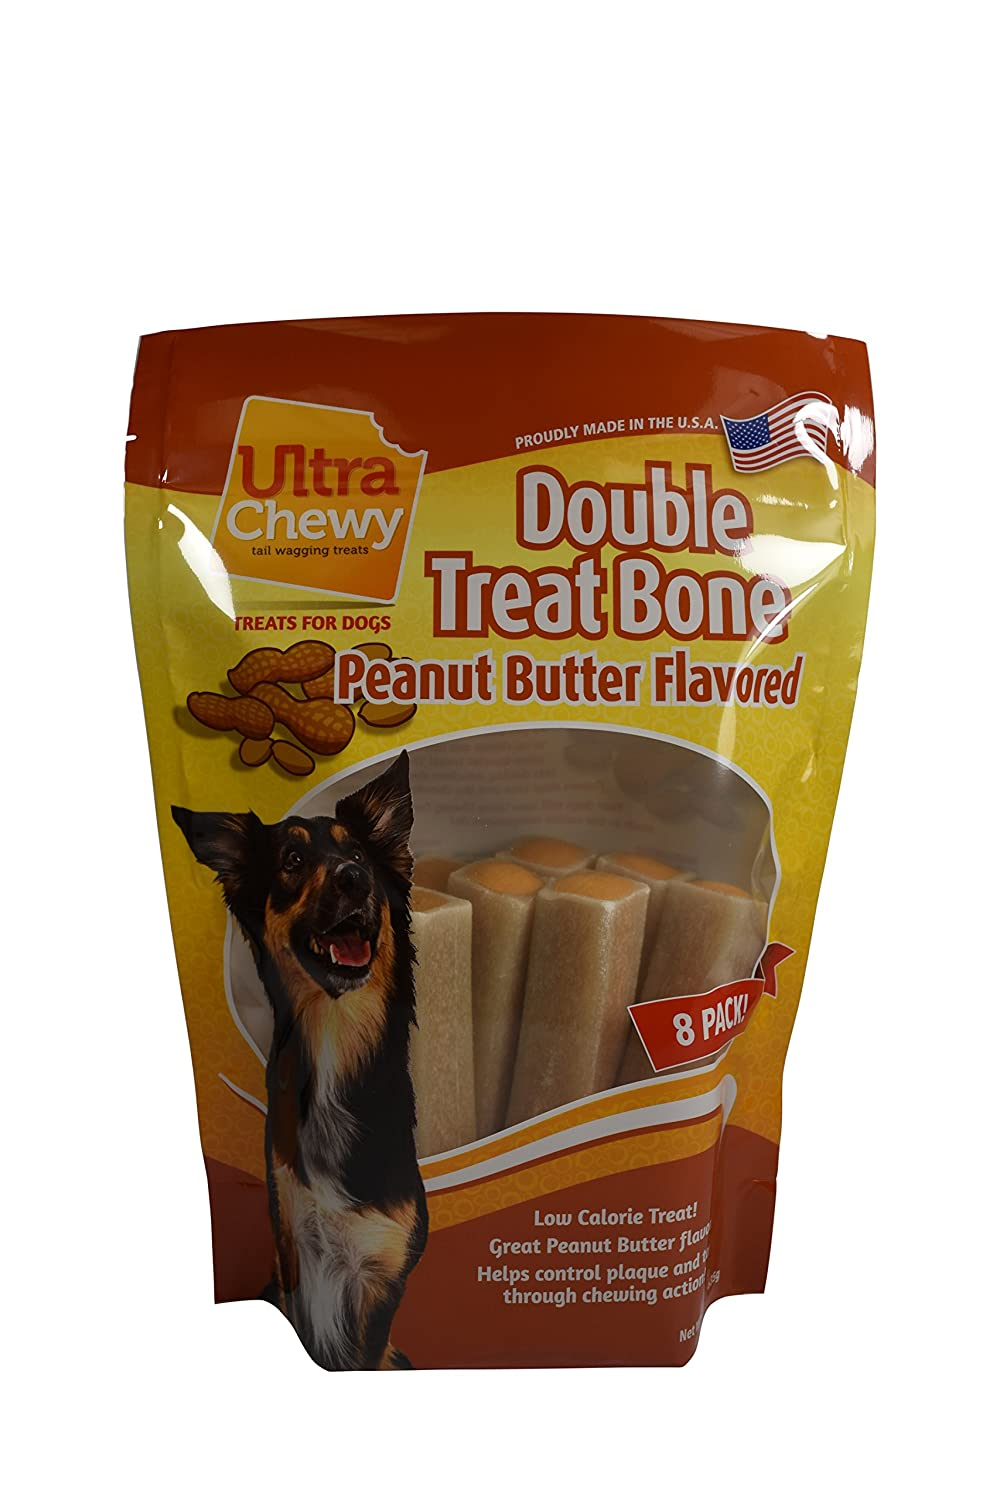 Ultra Chewy Peanut Butter Flavored Double Treat Bone Value Pack Includes 2 Packages